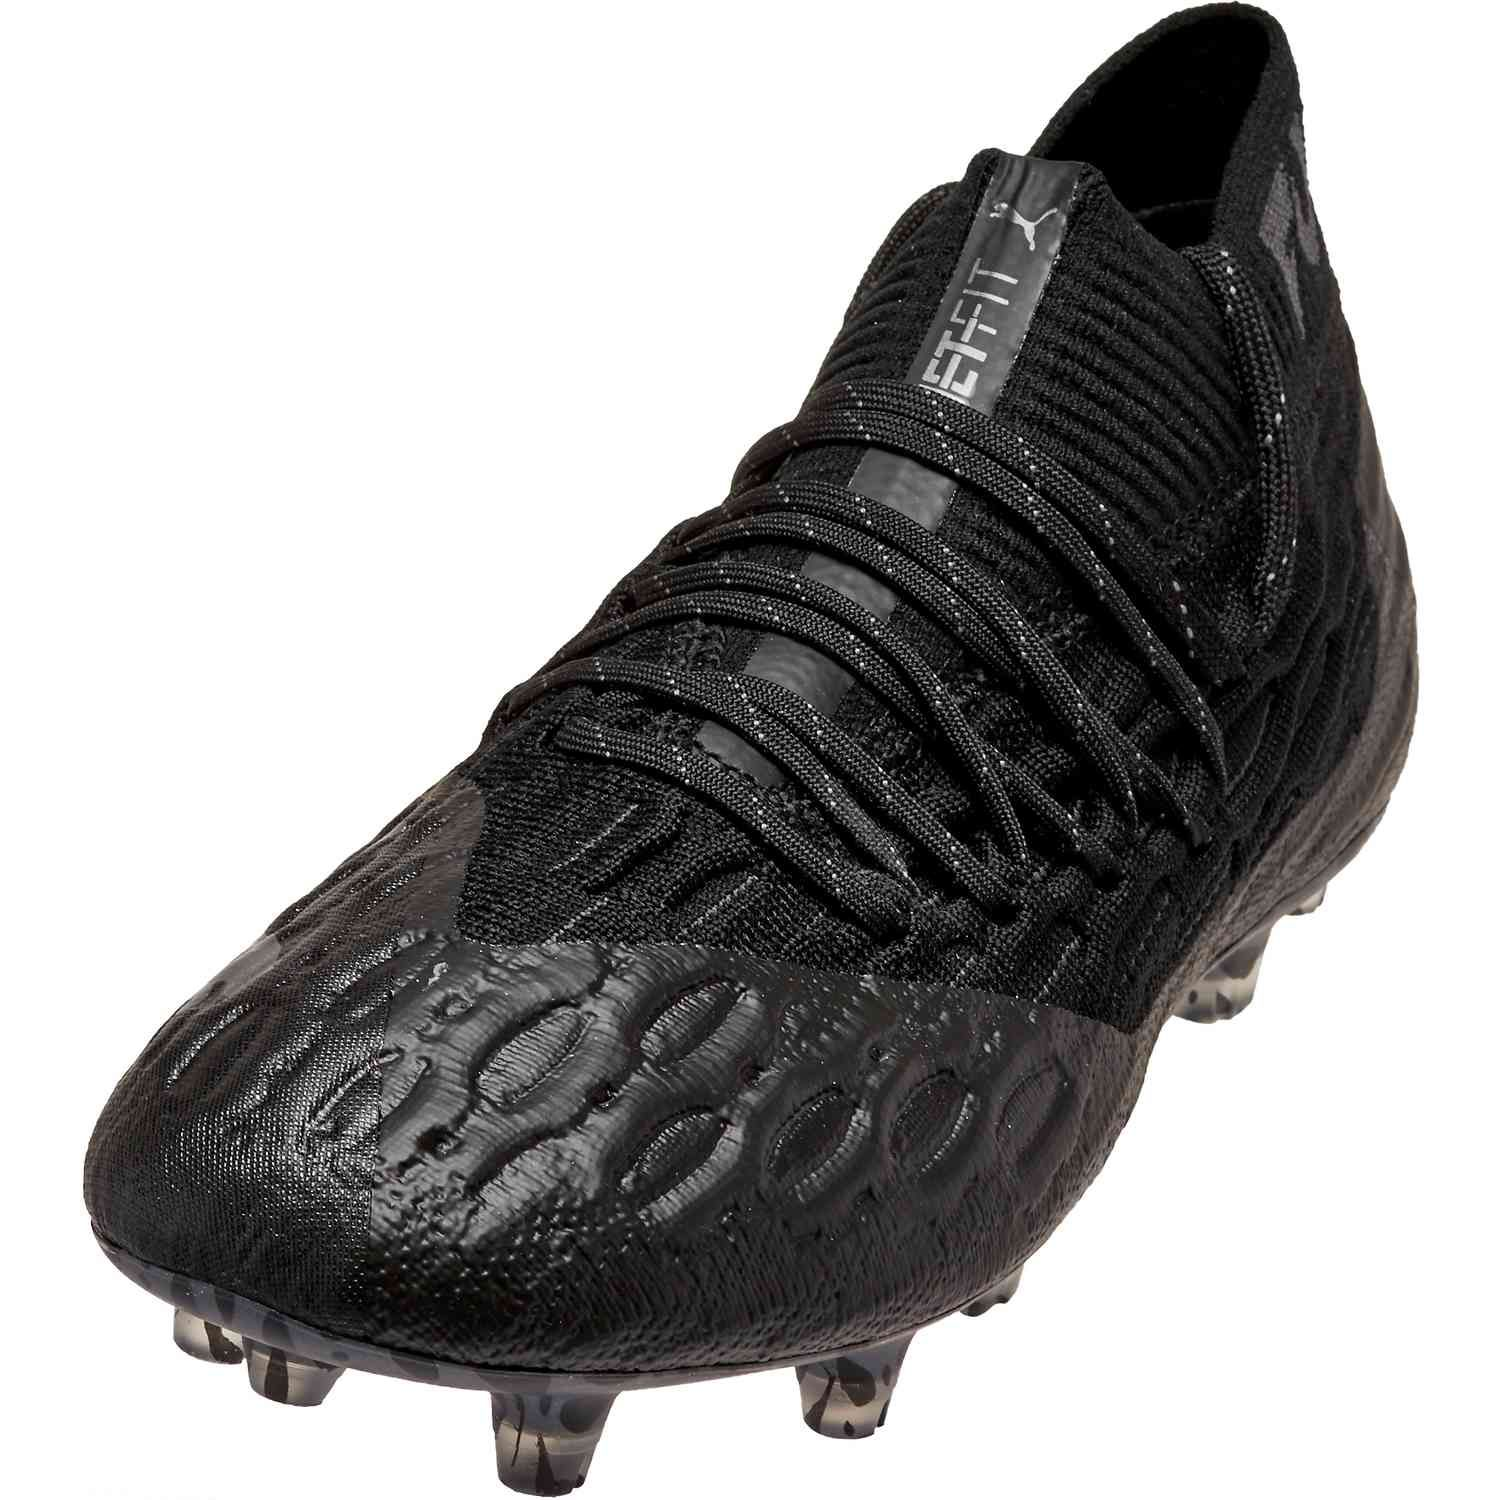 Puma Future 5 1 Fg Eclipse Pack Soccerpro In 2020 Puma All Black Sneakers Soccer Shoes